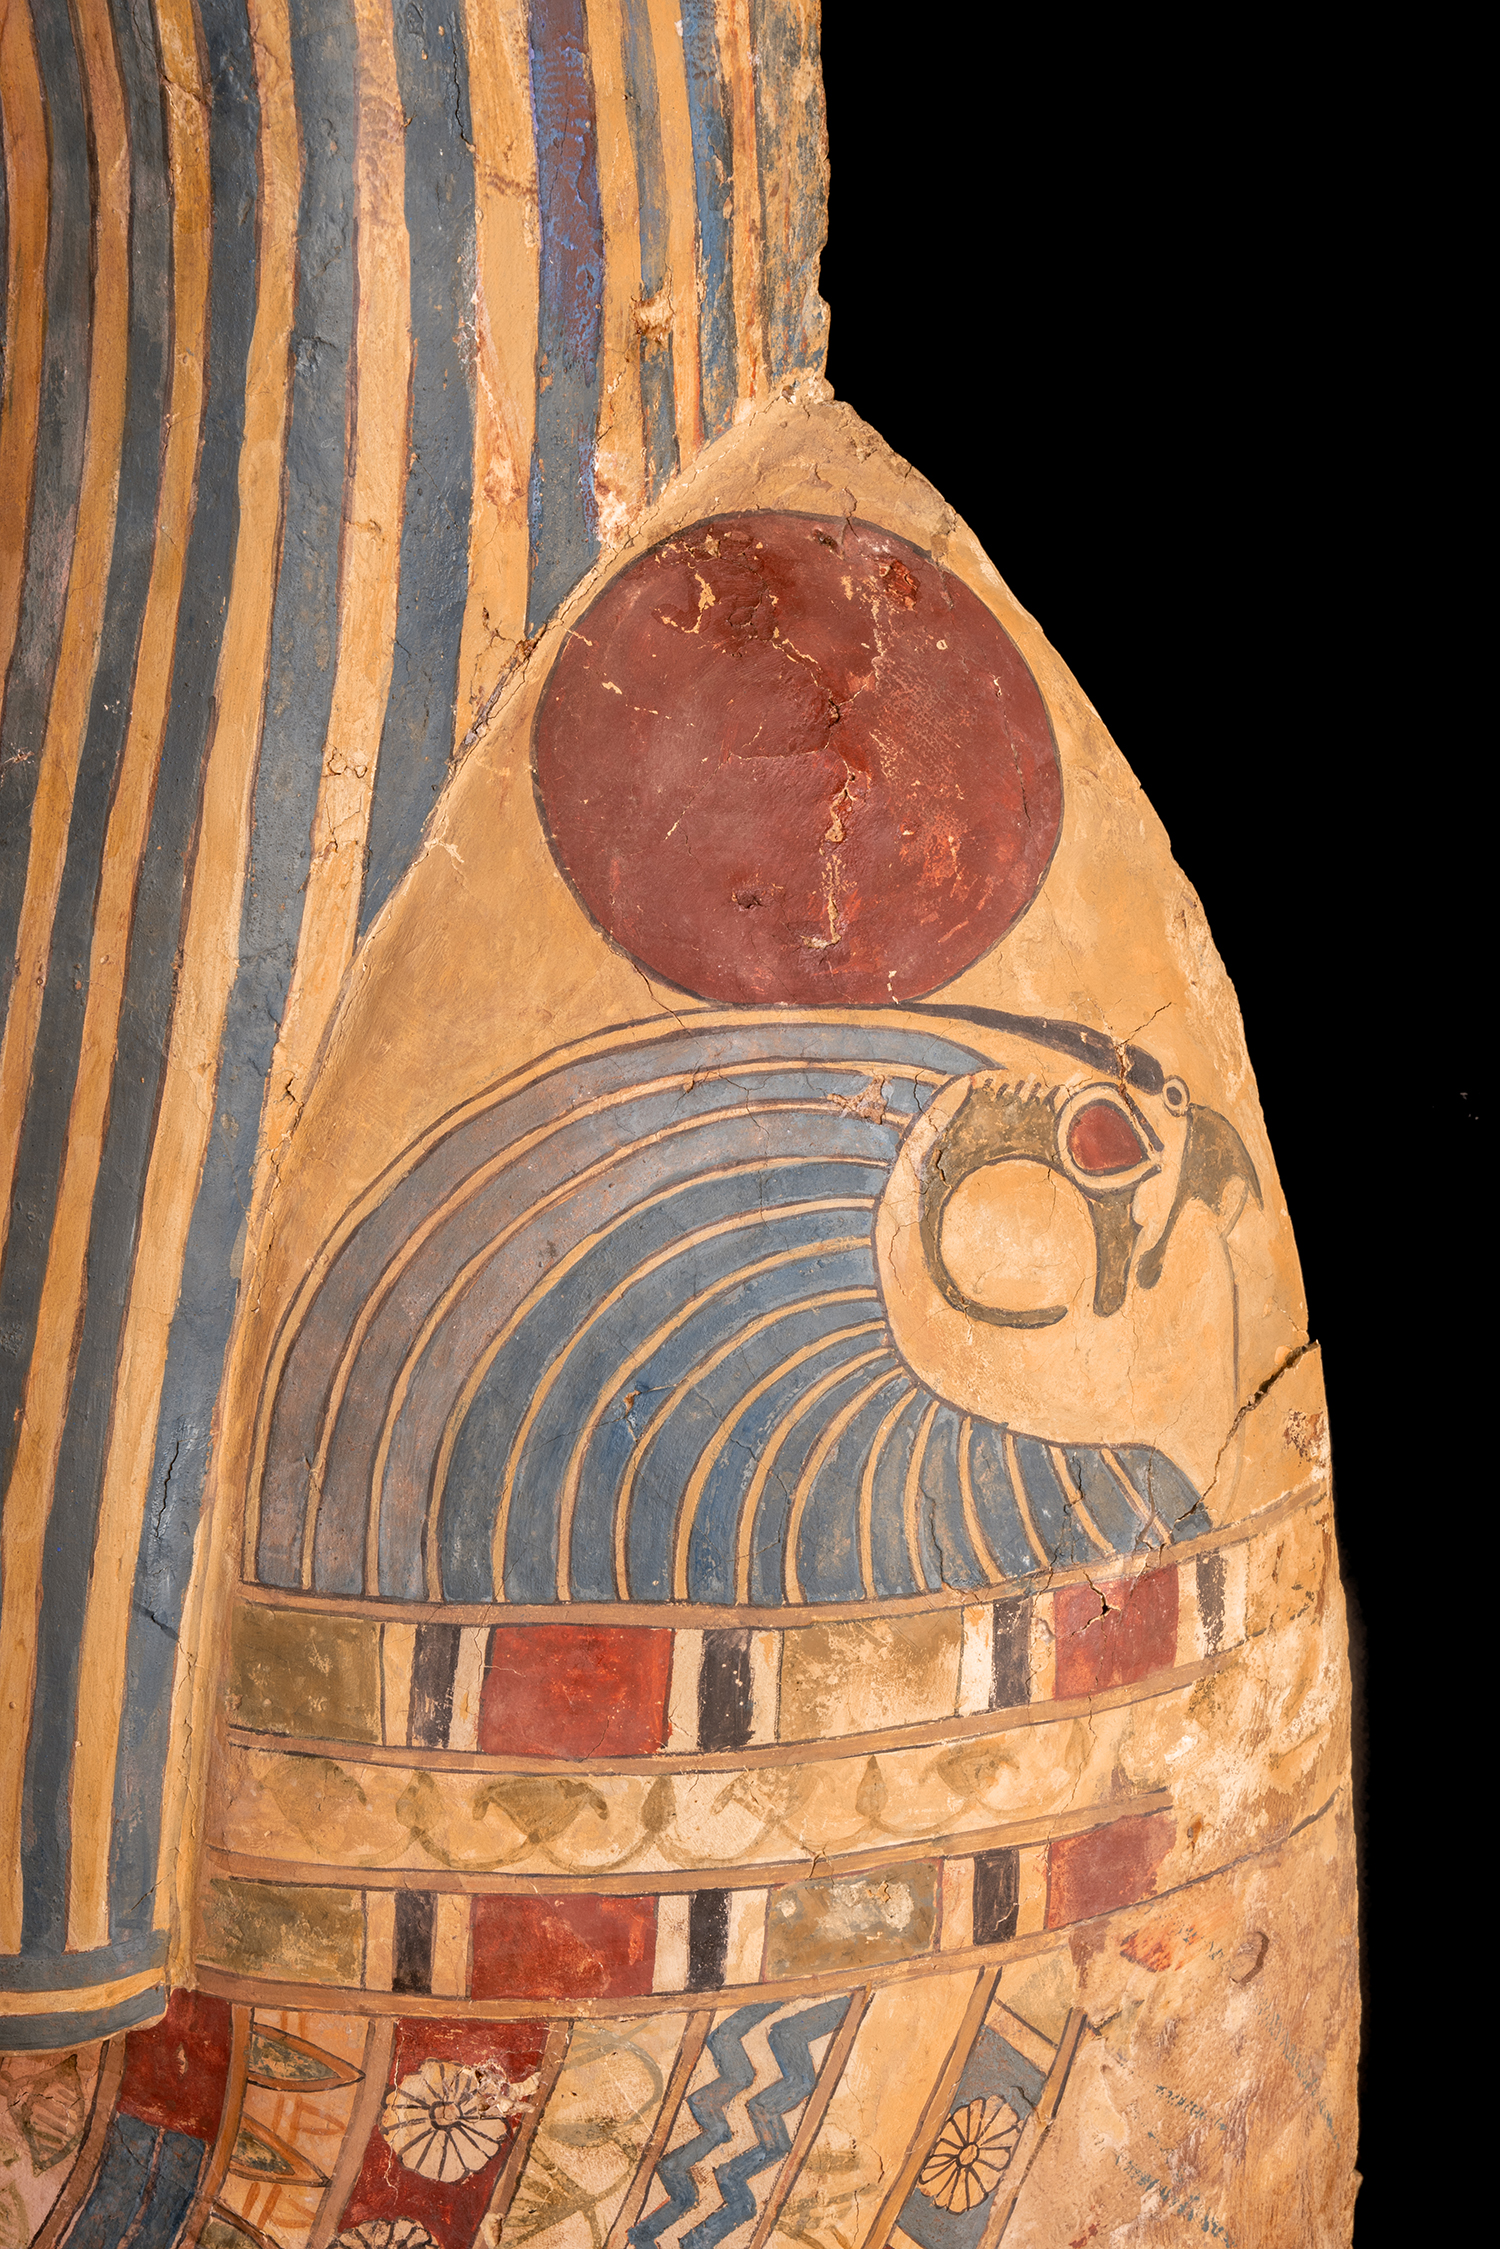 Figure 11: Close-up of one of the falcon-headed collar terminals on the coffin of Sema-tawy-iirdis.